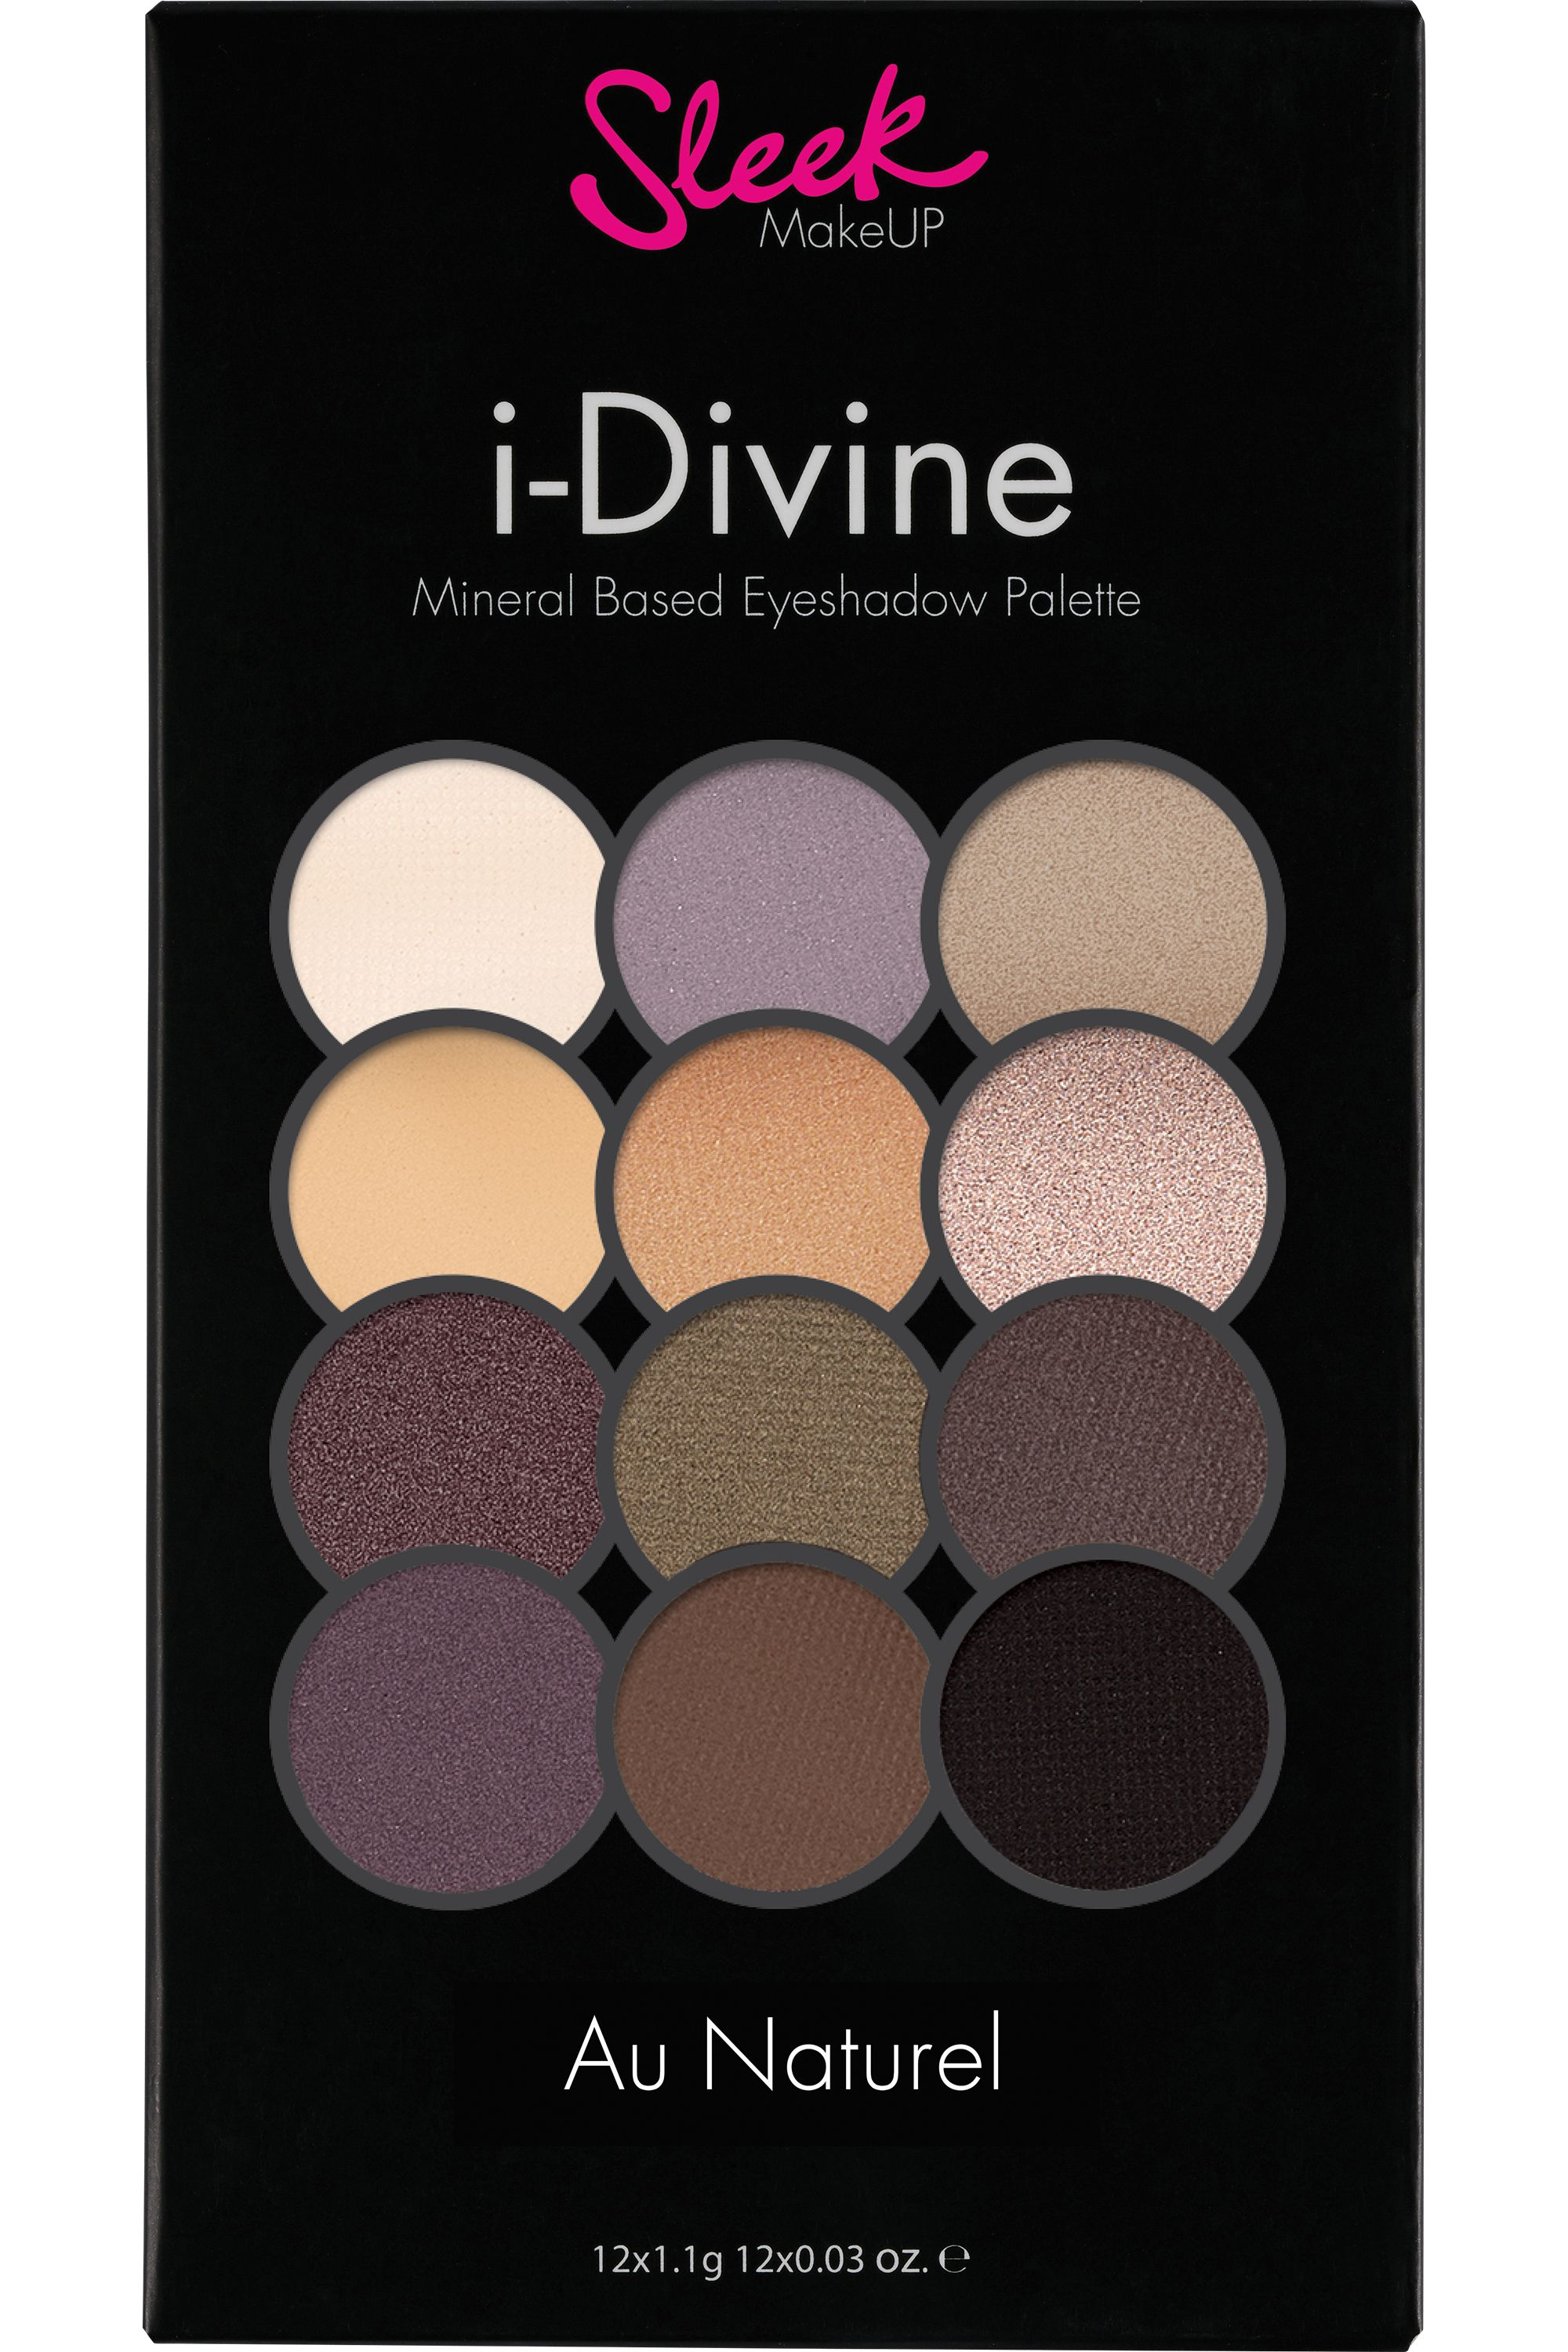 Blissim : Sleek MakeUP - Palette de fards à paupières i-Divine - Au Naturel